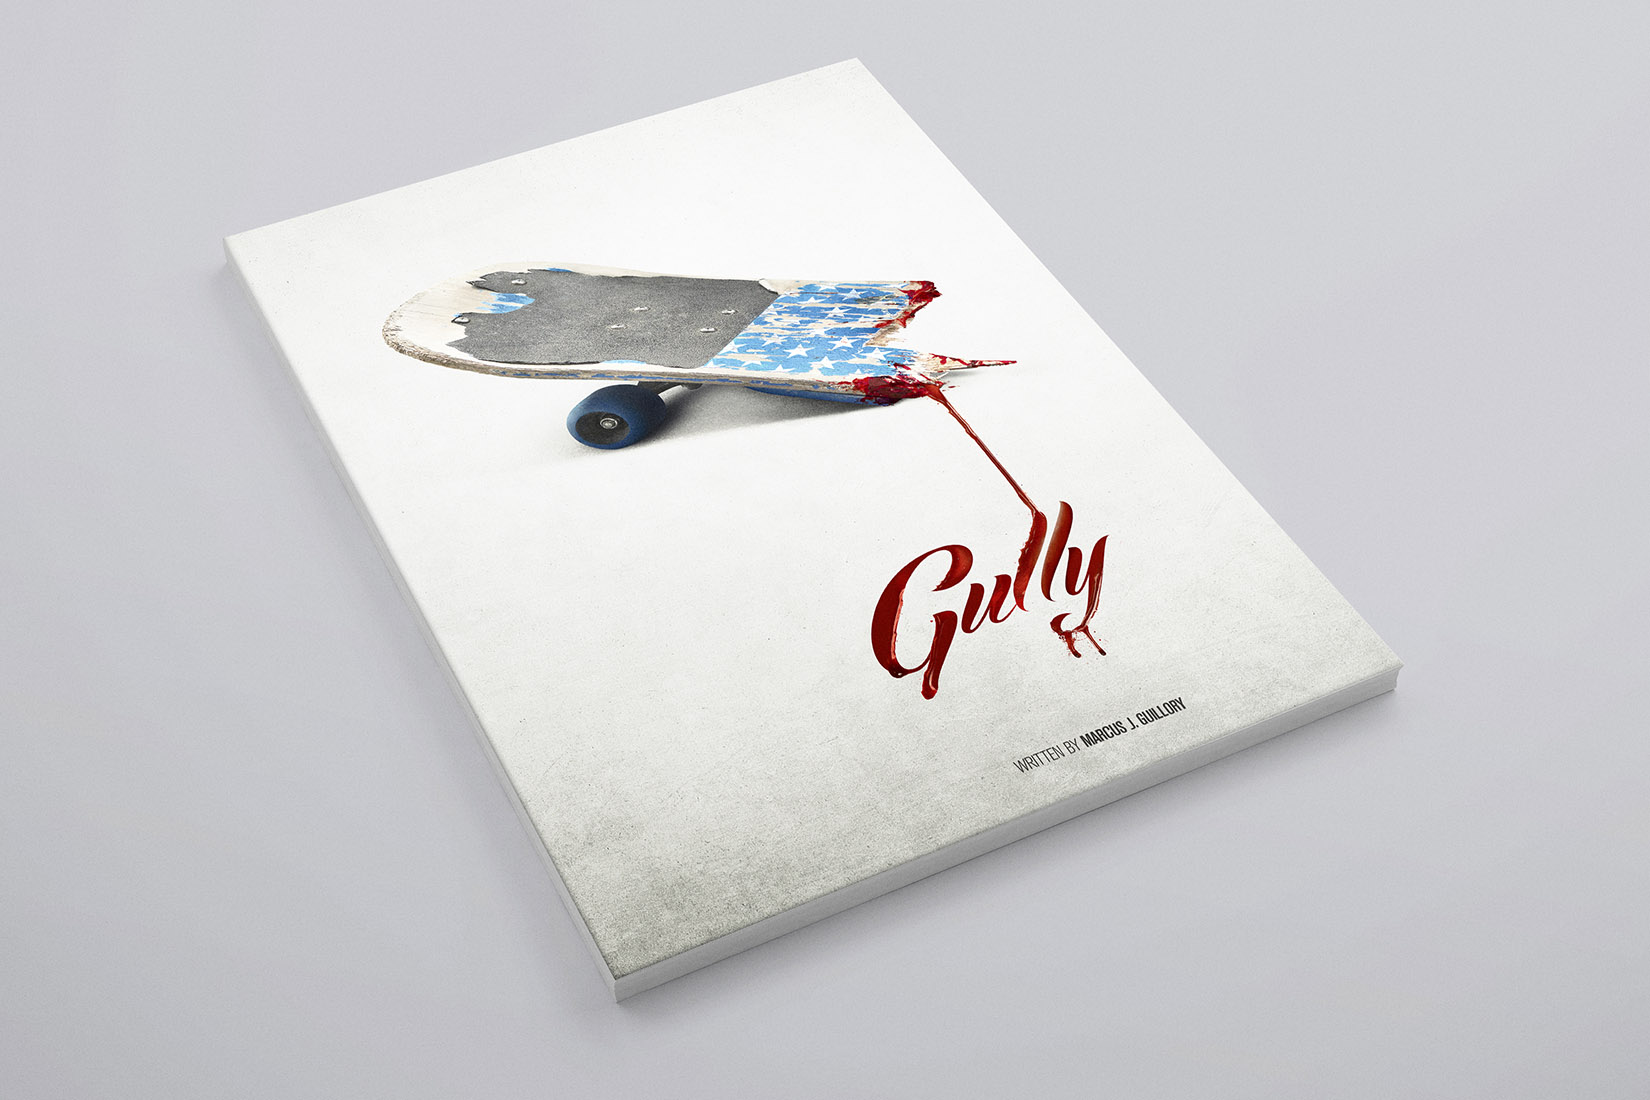 Gully Script Cover.jpg